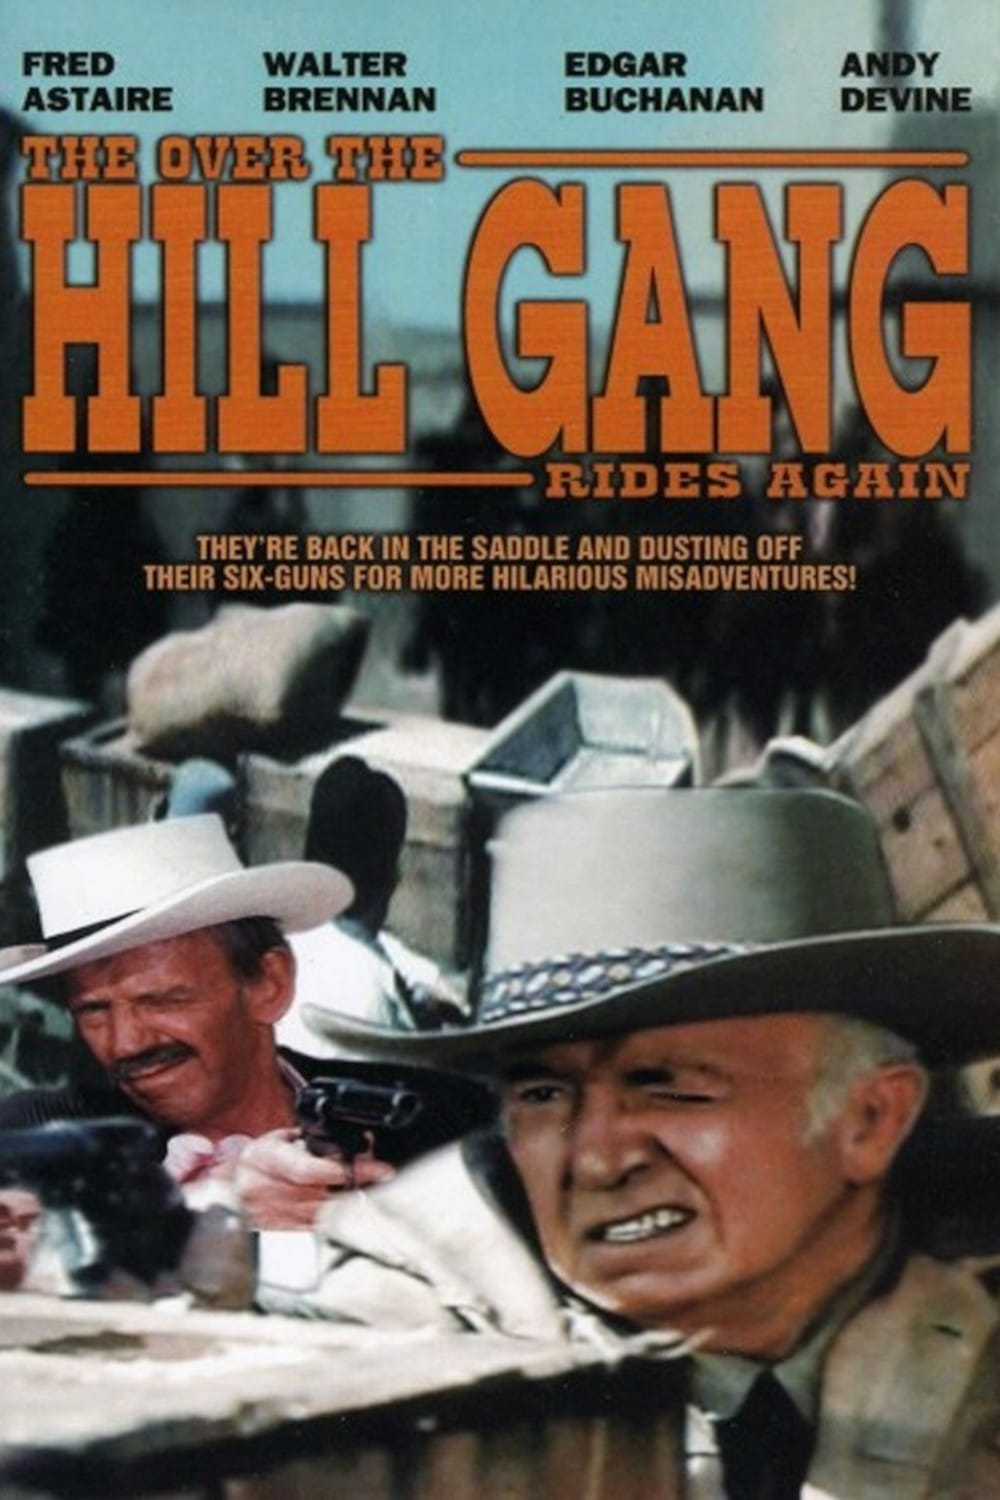 The Over The Hill Gang Rides Again (1970)